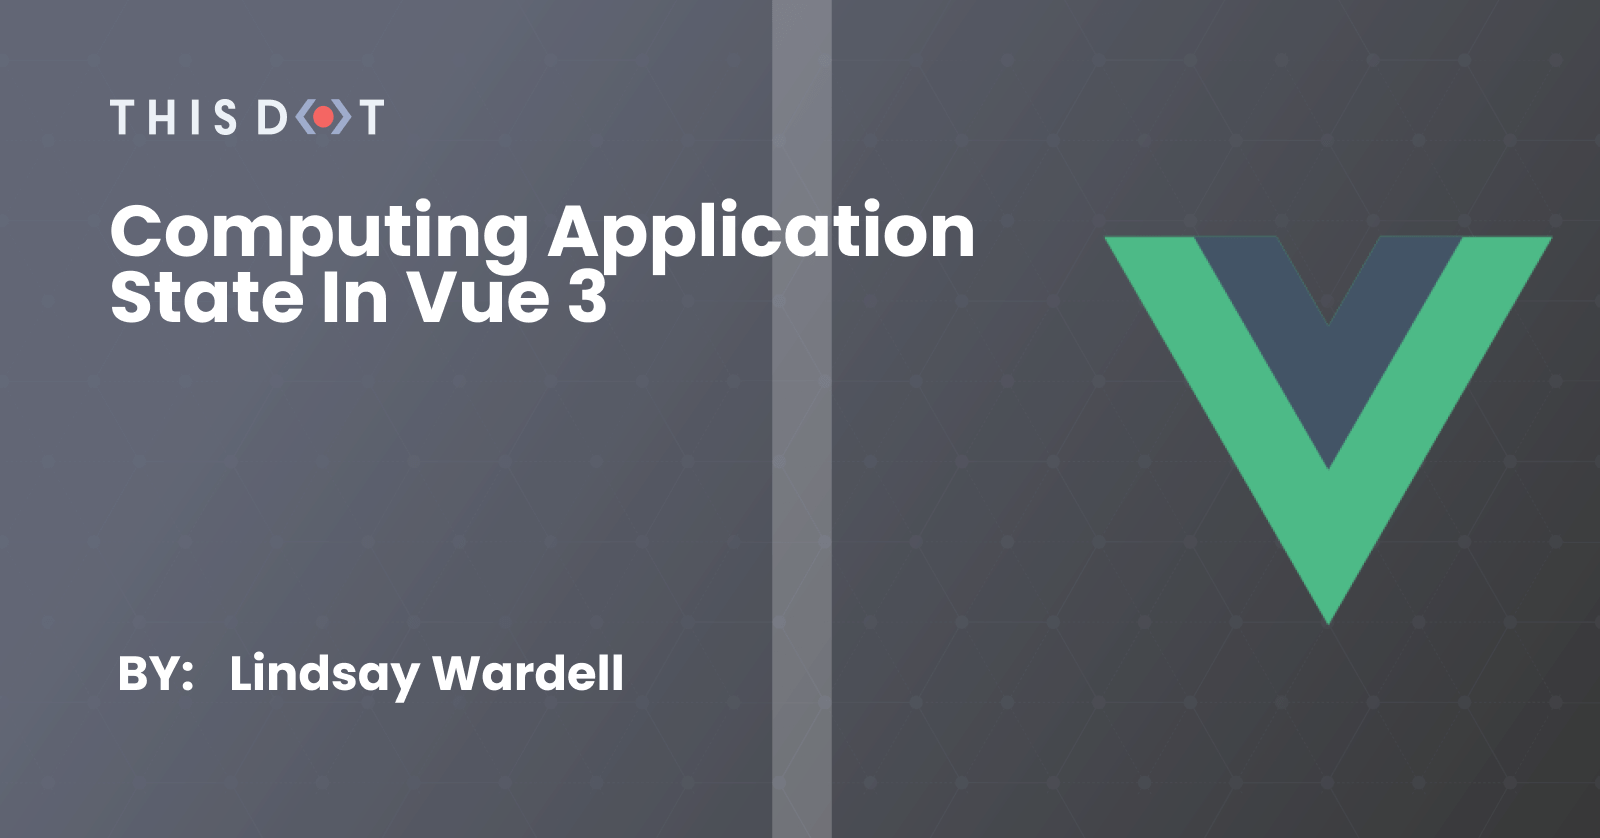 Computing Application State in Vue 3